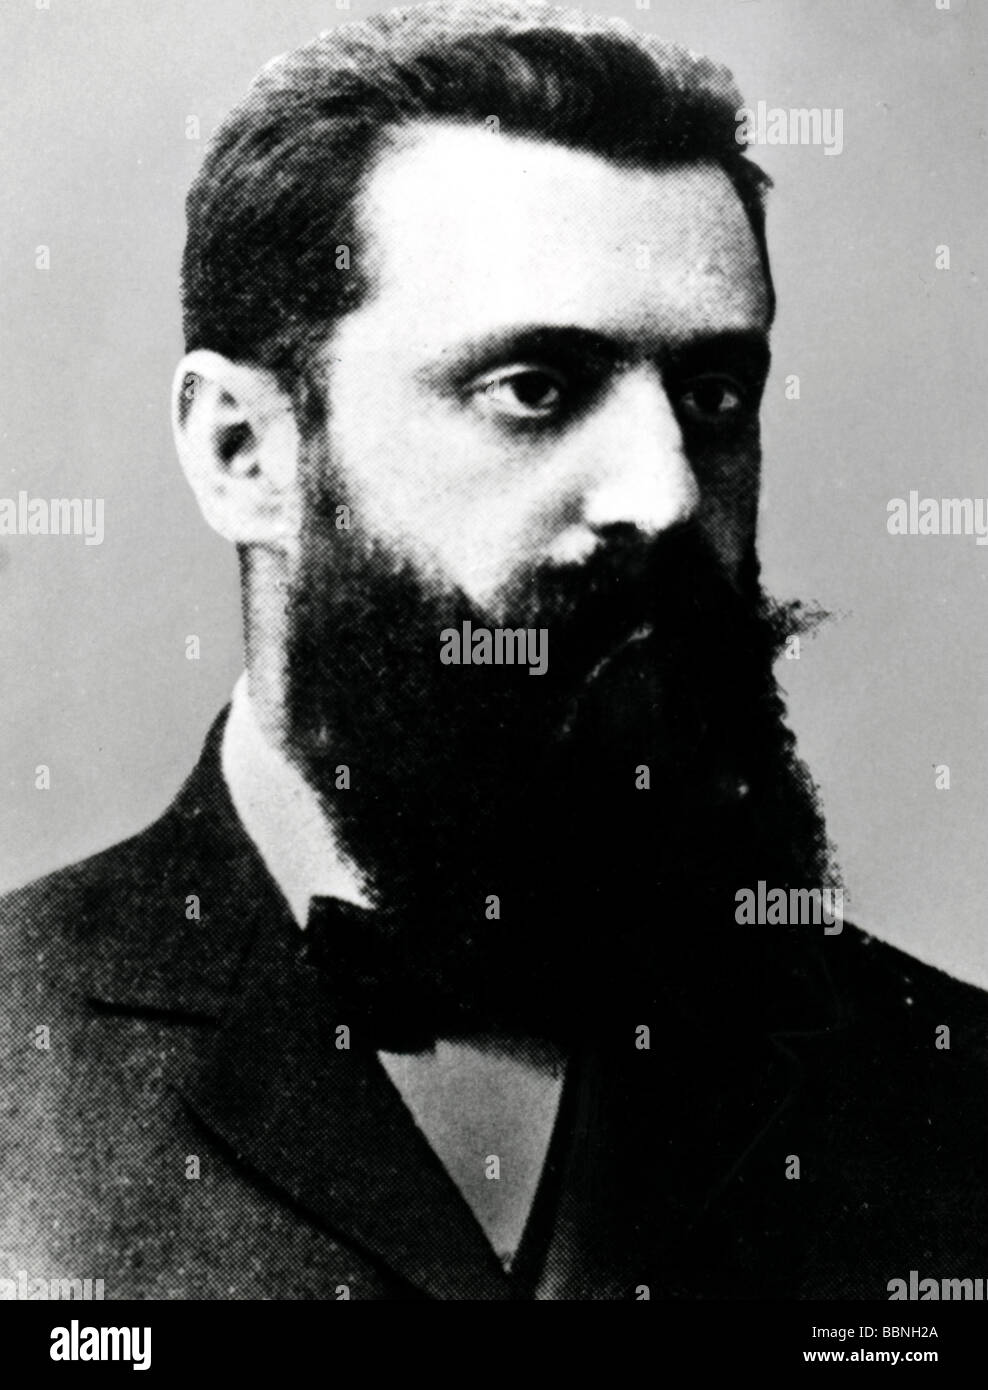 Herzl, Theodor, 2.5.1860 - 3.7.1904, Hungarian Austrian author / writer and politician, portrait, after photography, Stock Photo